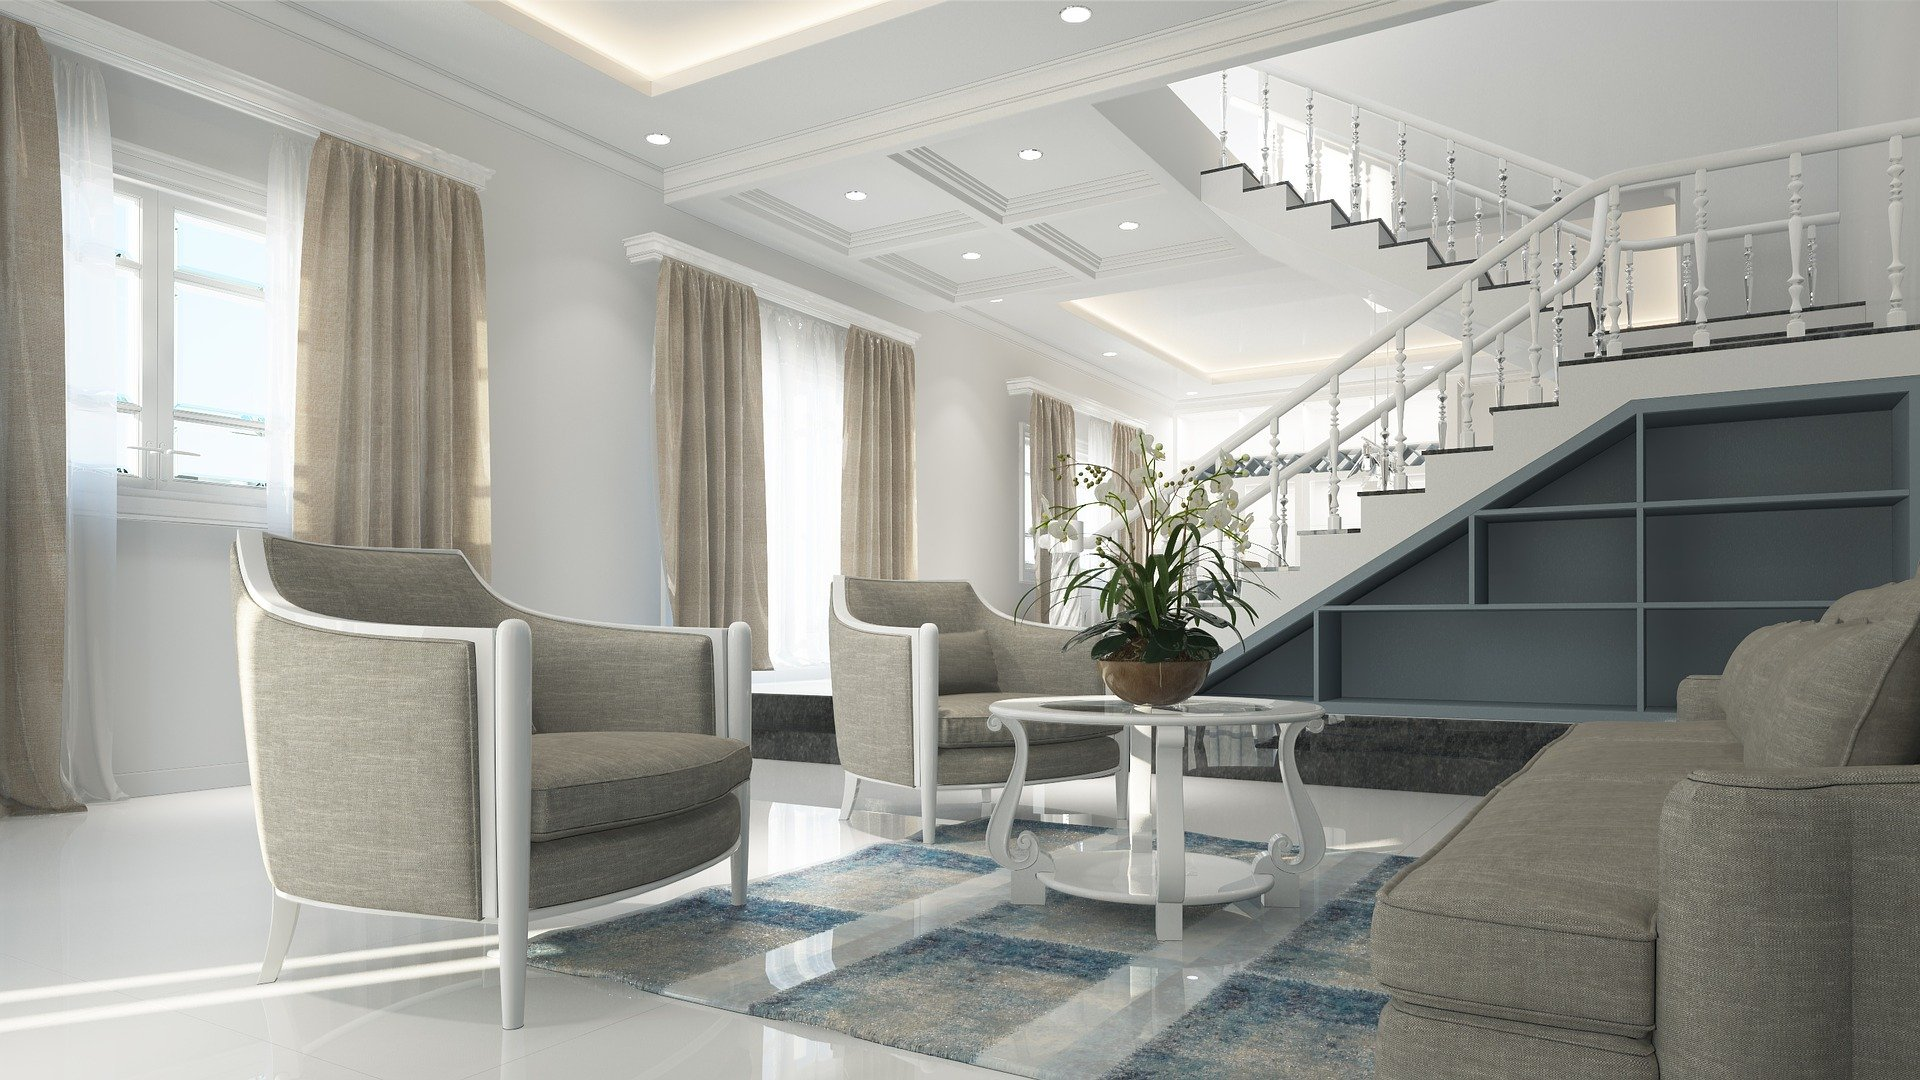 3D Render Neutral Modern Interior Design living room interior with beige grey sofa and occasional chairs, beige grey curtains and a blue ombre rug